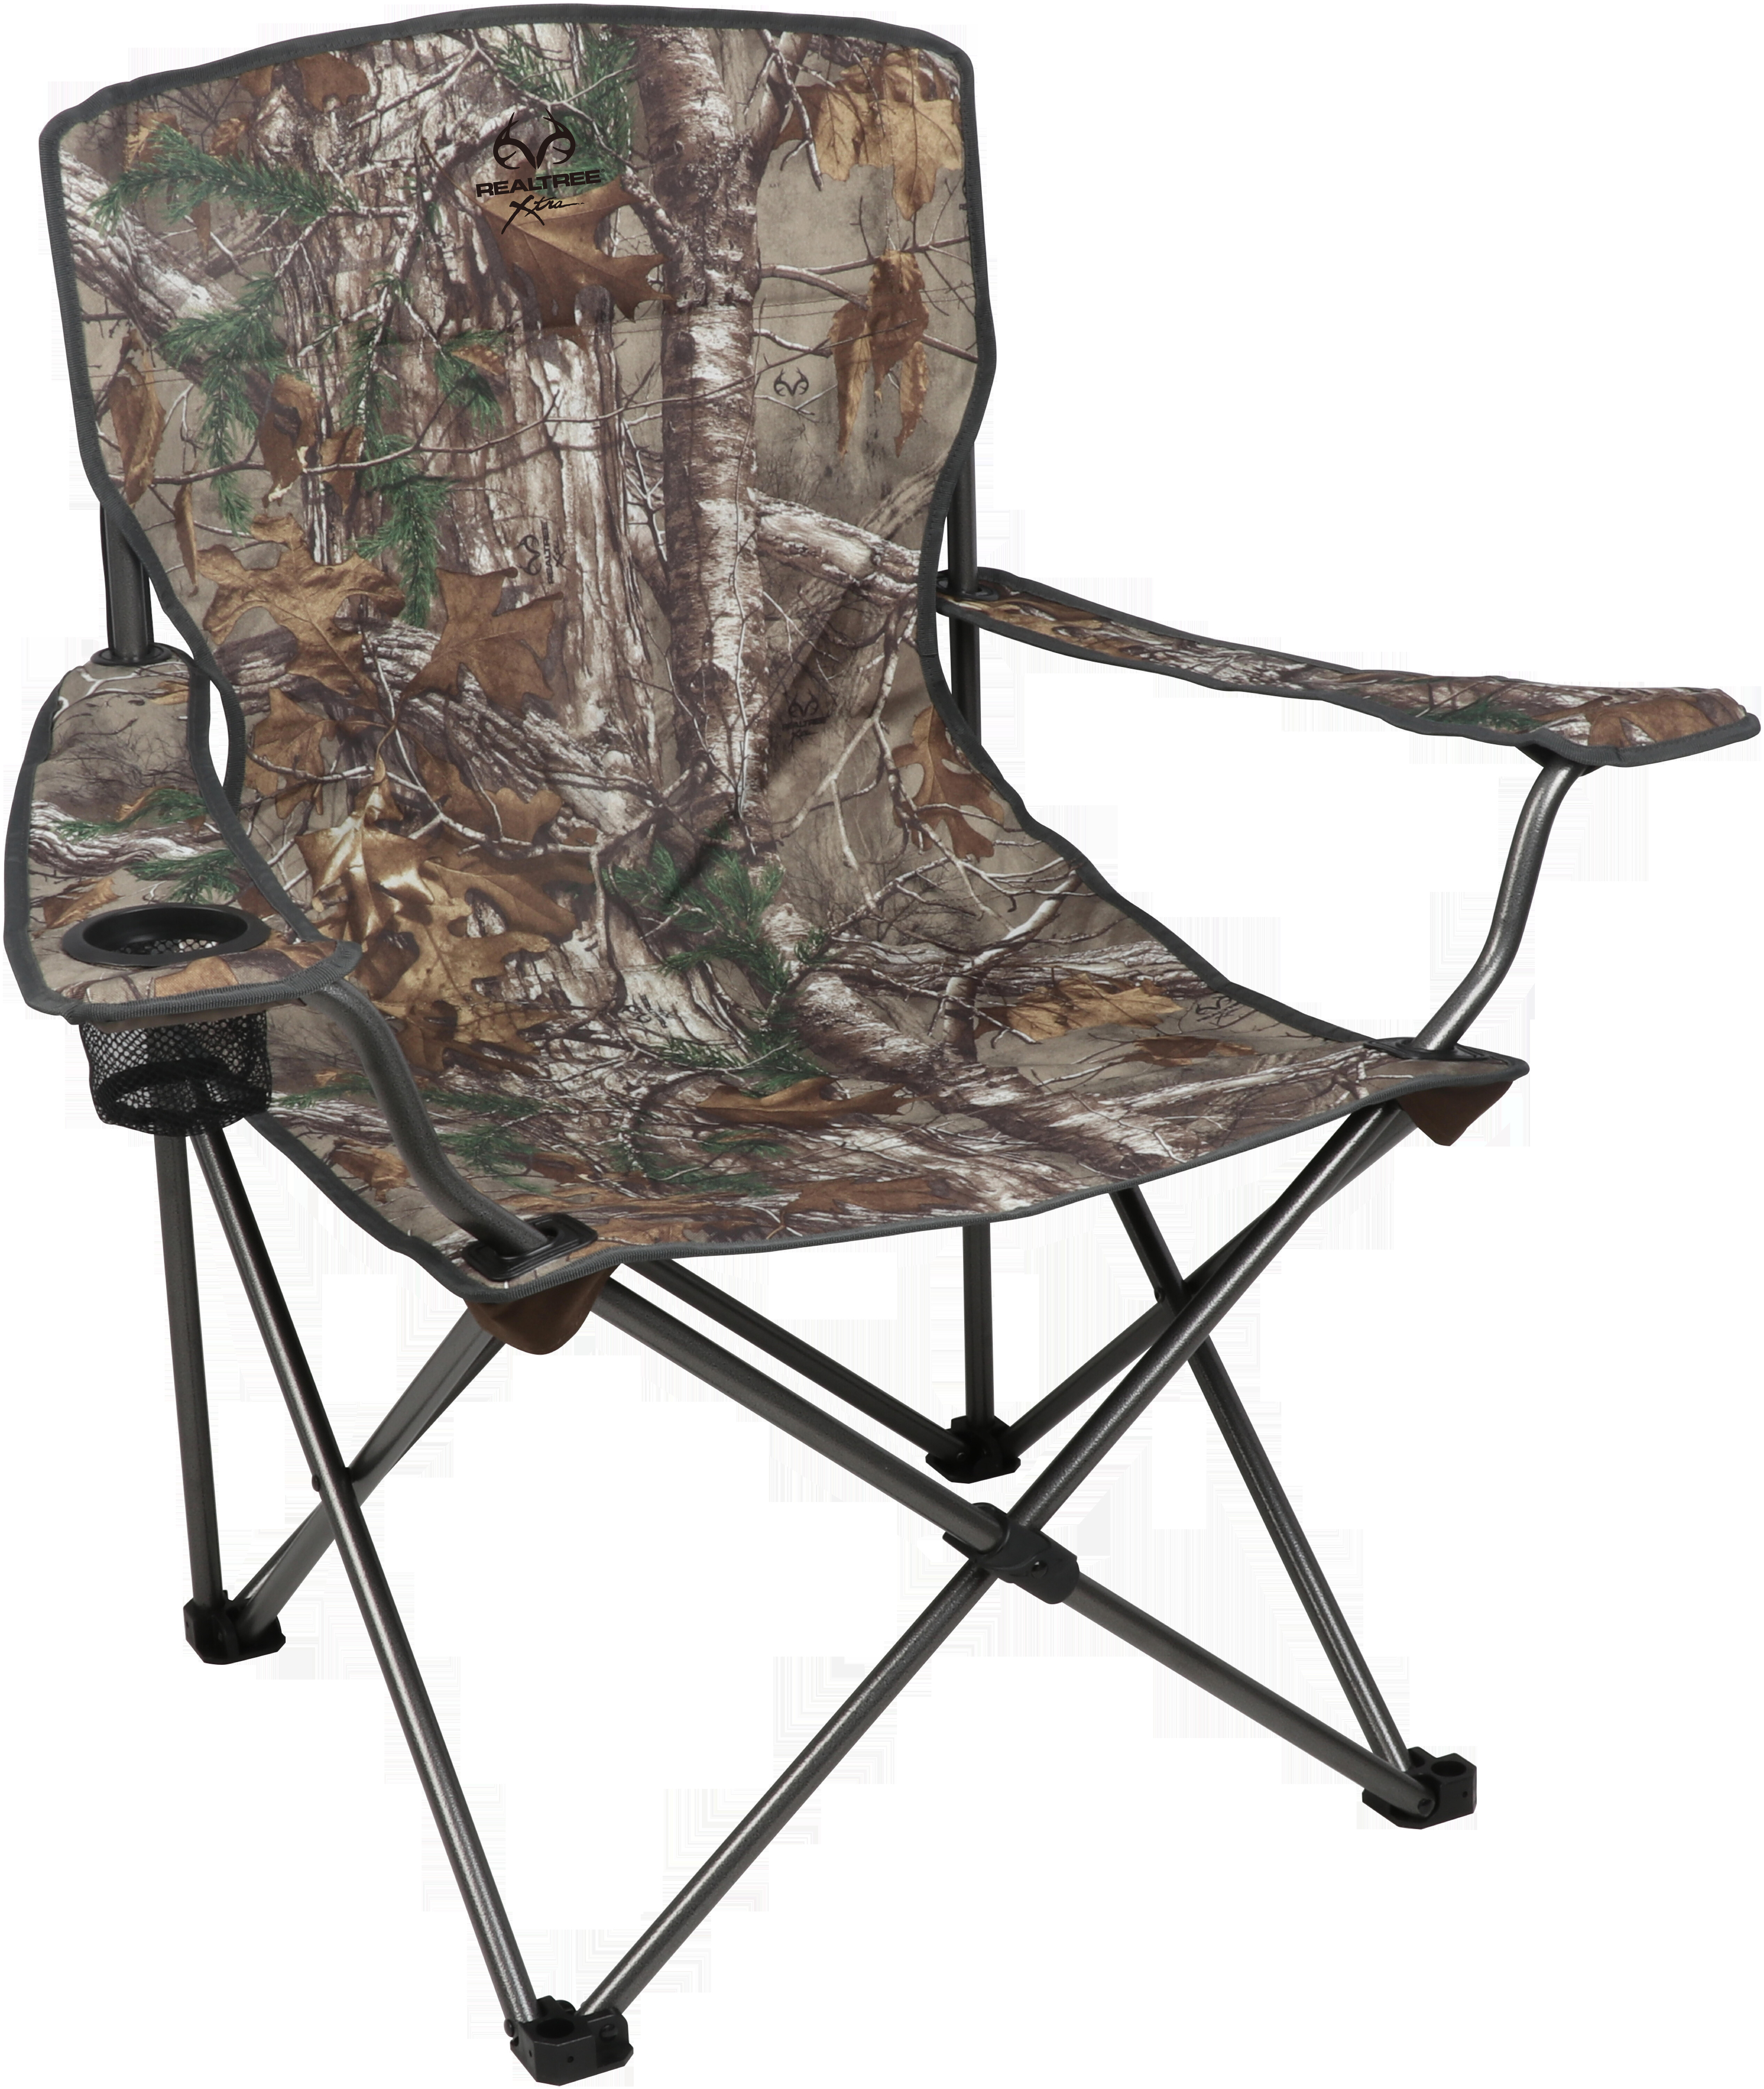 Stupendous Seasonal Trends Prwf Fch003 Rt Realtree Chair Big Boy Camo Realtree Unemploymentrelief Wooden Chair Designs For Living Room Unemploymentrelieforg